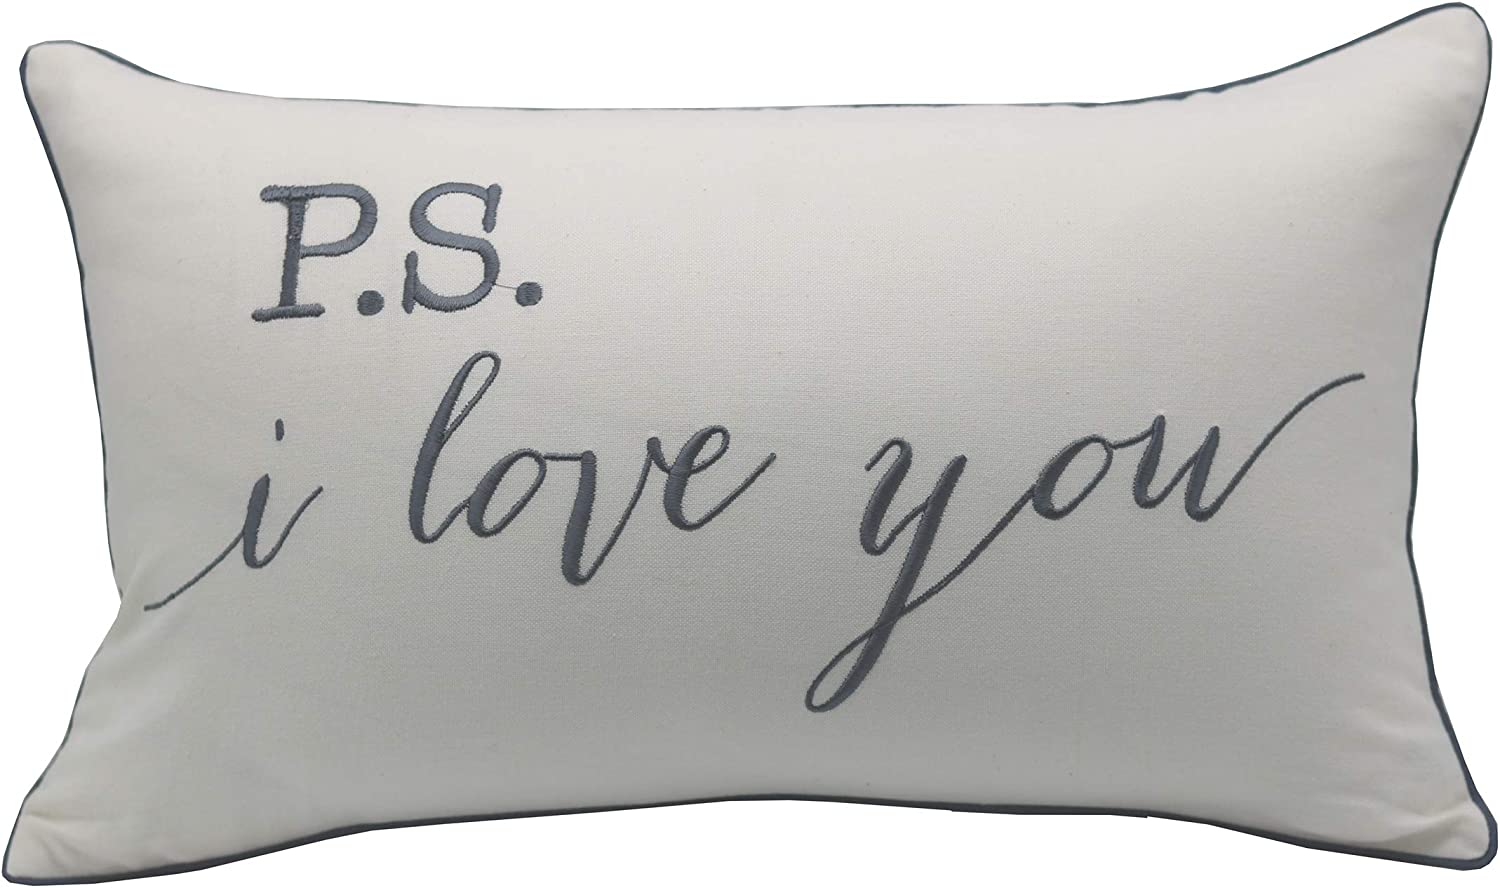 Yugtex P S I Love You Embroidered Lumbar Accent Throw Pillow Cover 12x20 Ivory Home Kitchen